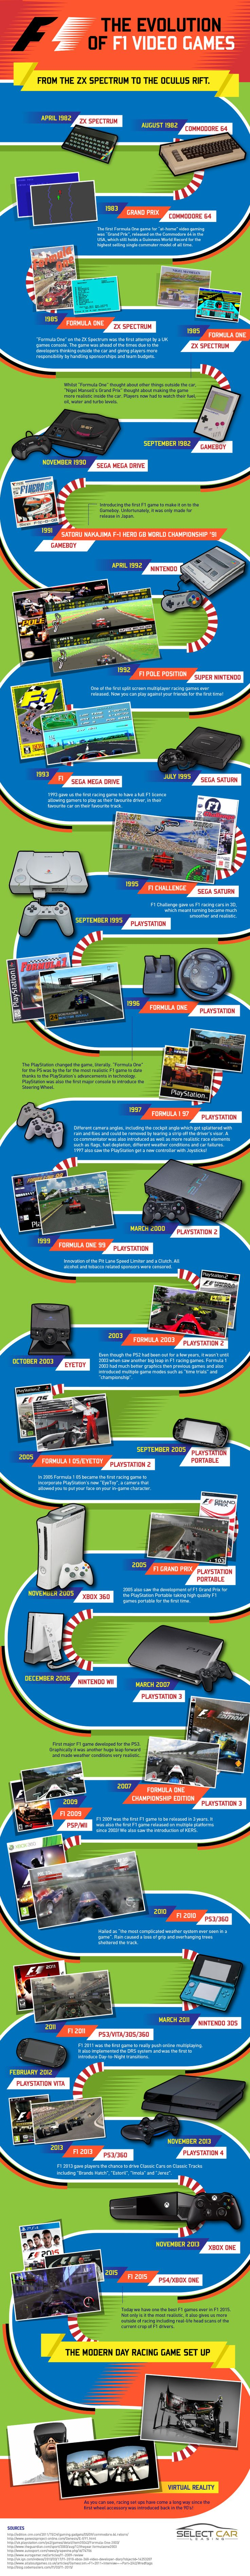 The Evolution of F1 Video Games #Infographic #VideoGames #Games